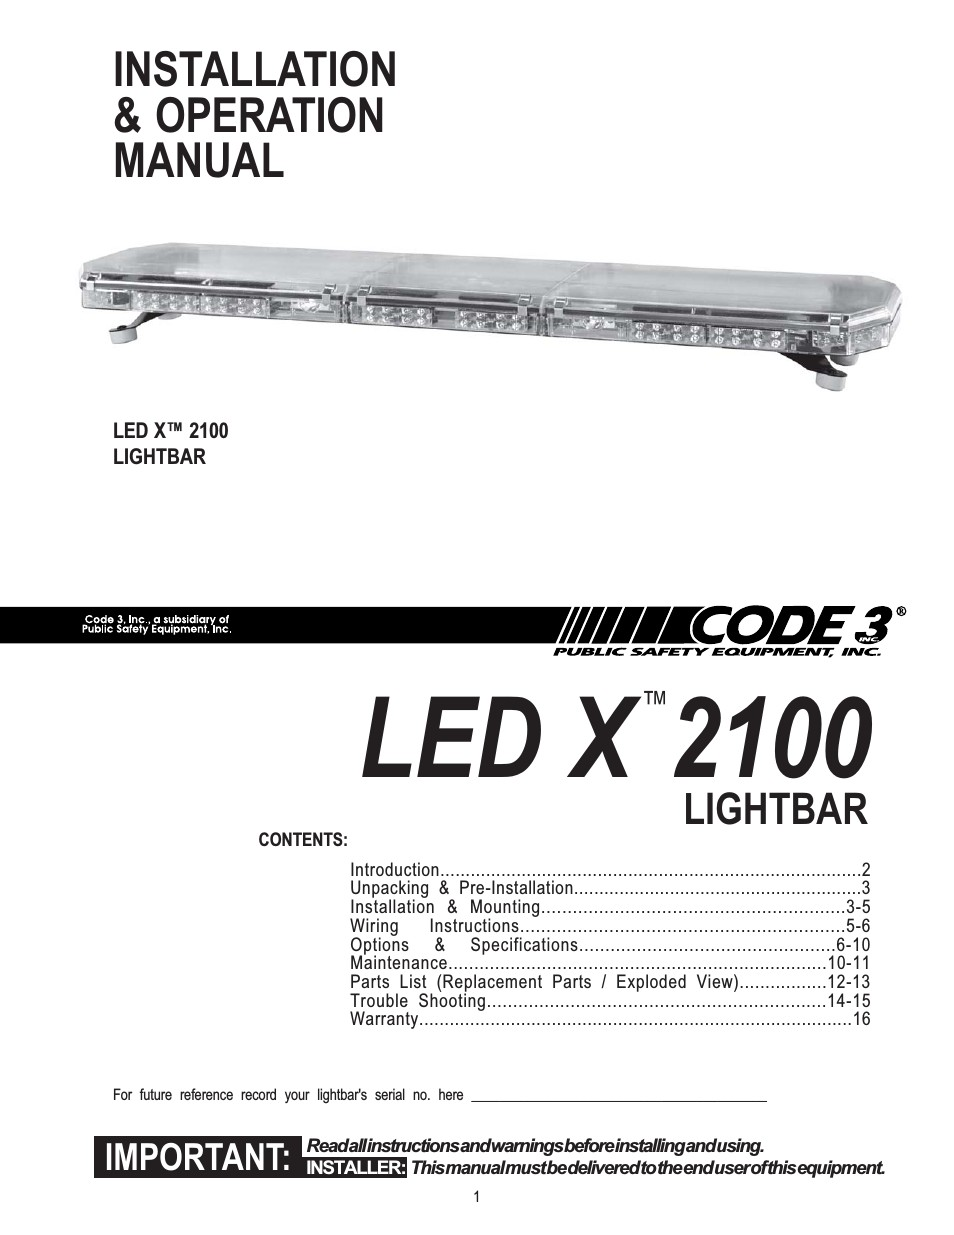 ... led x 2100 code 3 wiring wiring diagram services \u2022 code 3 mx7000  parts code